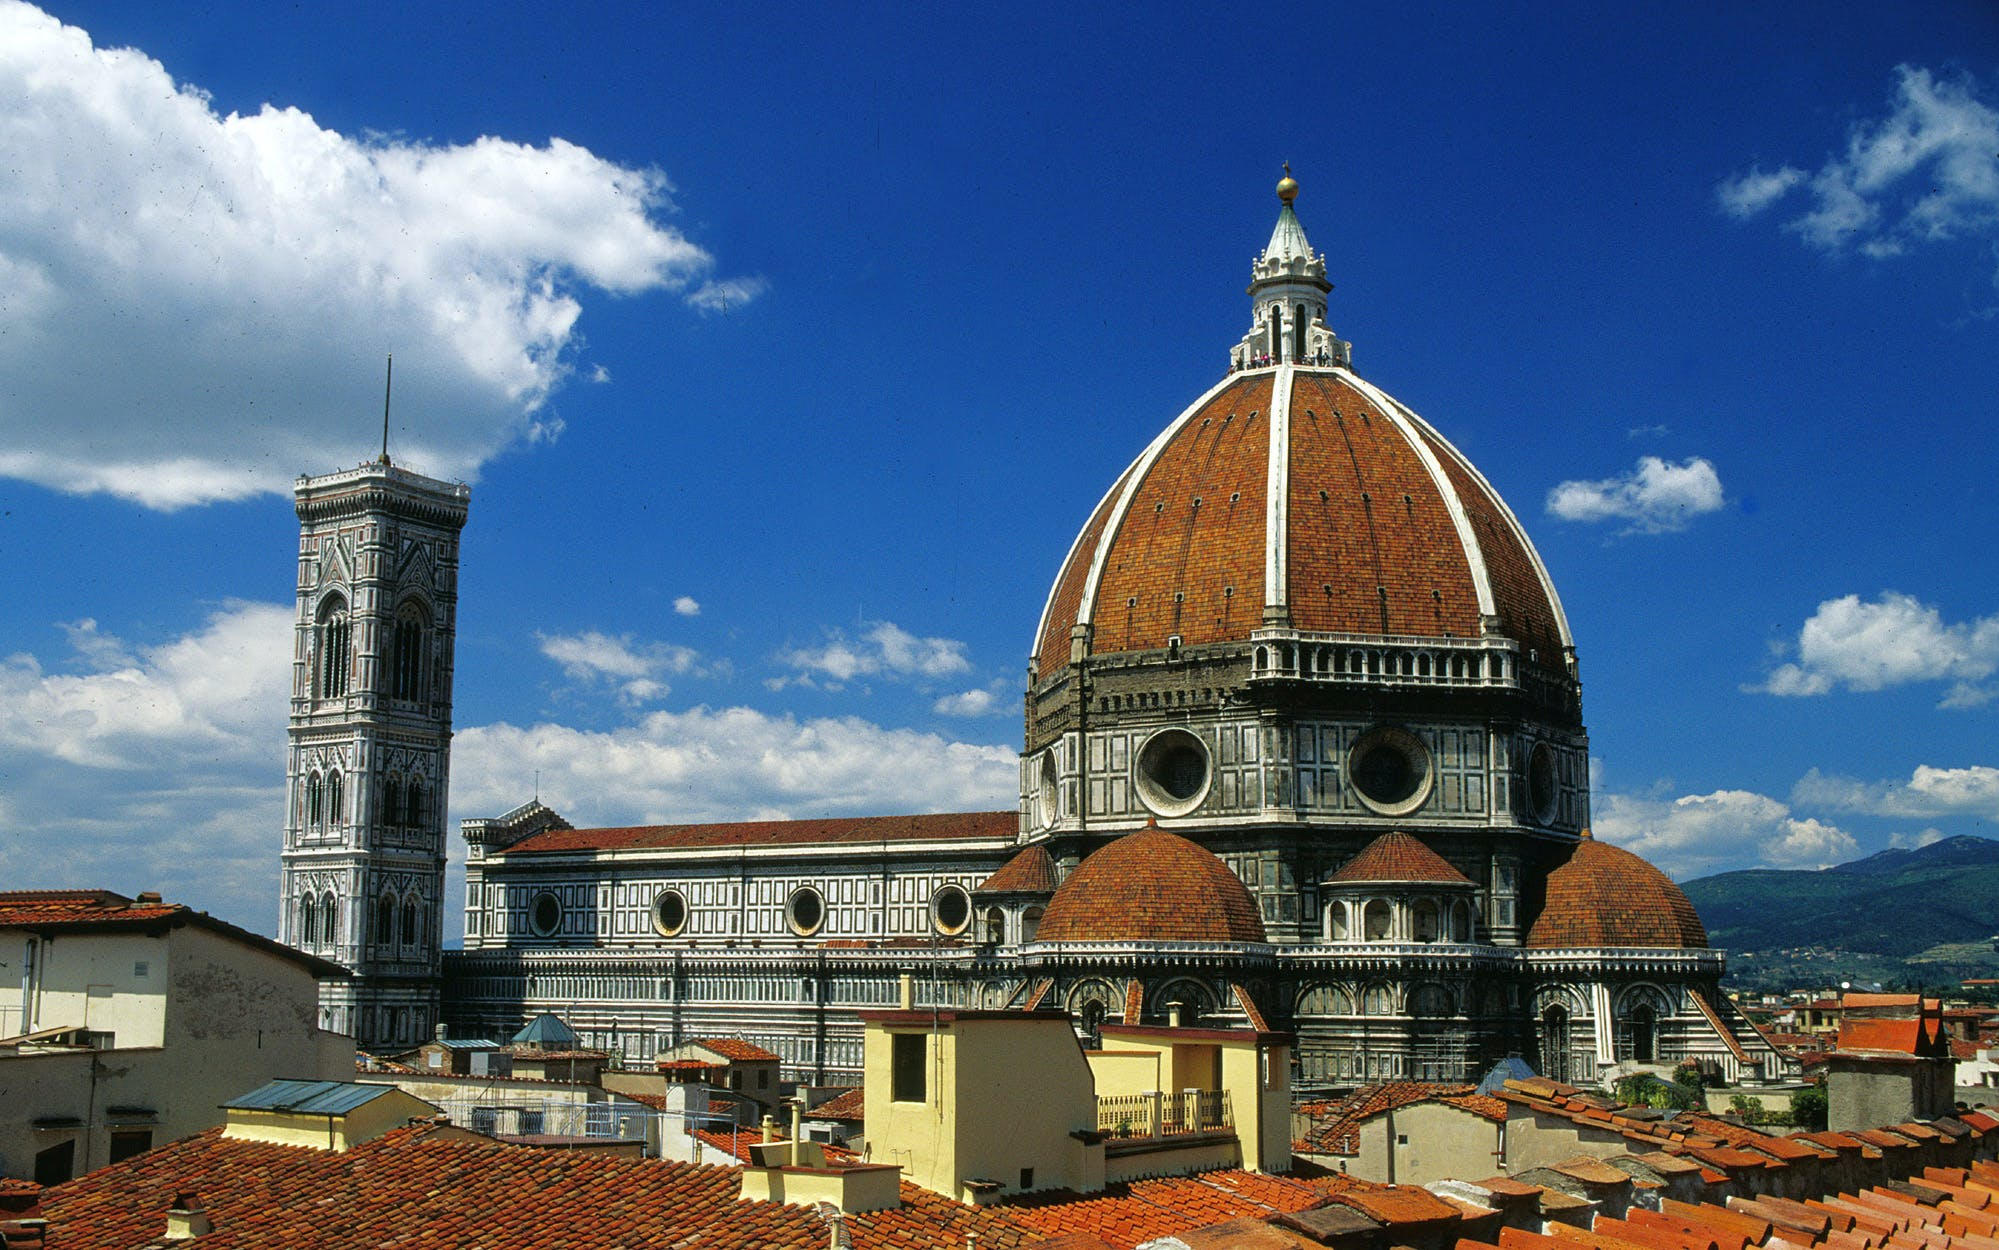 florence duomo and academia gallery guided tour-2